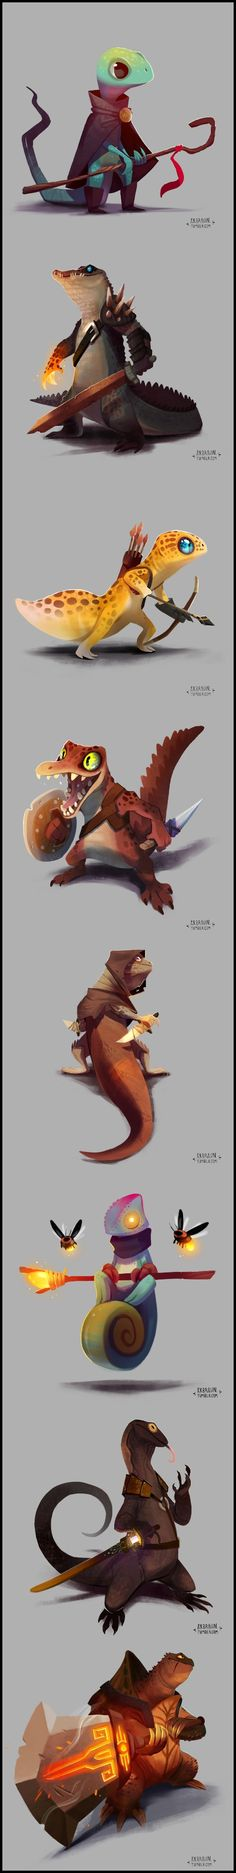 RPG Reptiles by Alex Braun